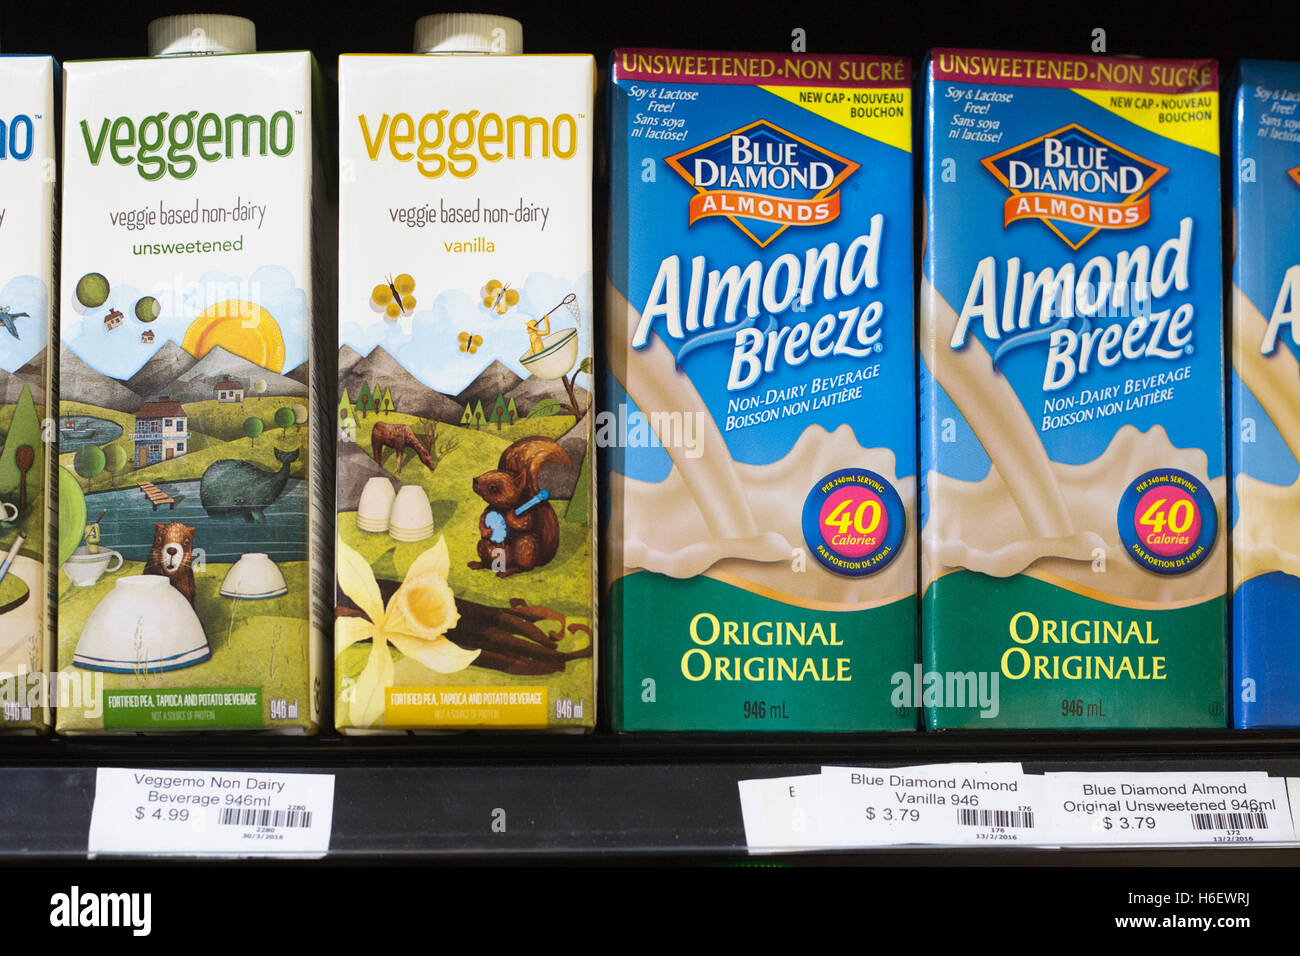 Packaged Milk Stock Photos Images Alamy Diamond Choco Fresh 946 Ml Packages Of Almond And Veggemo Beverages Showing Price In Dollars Image